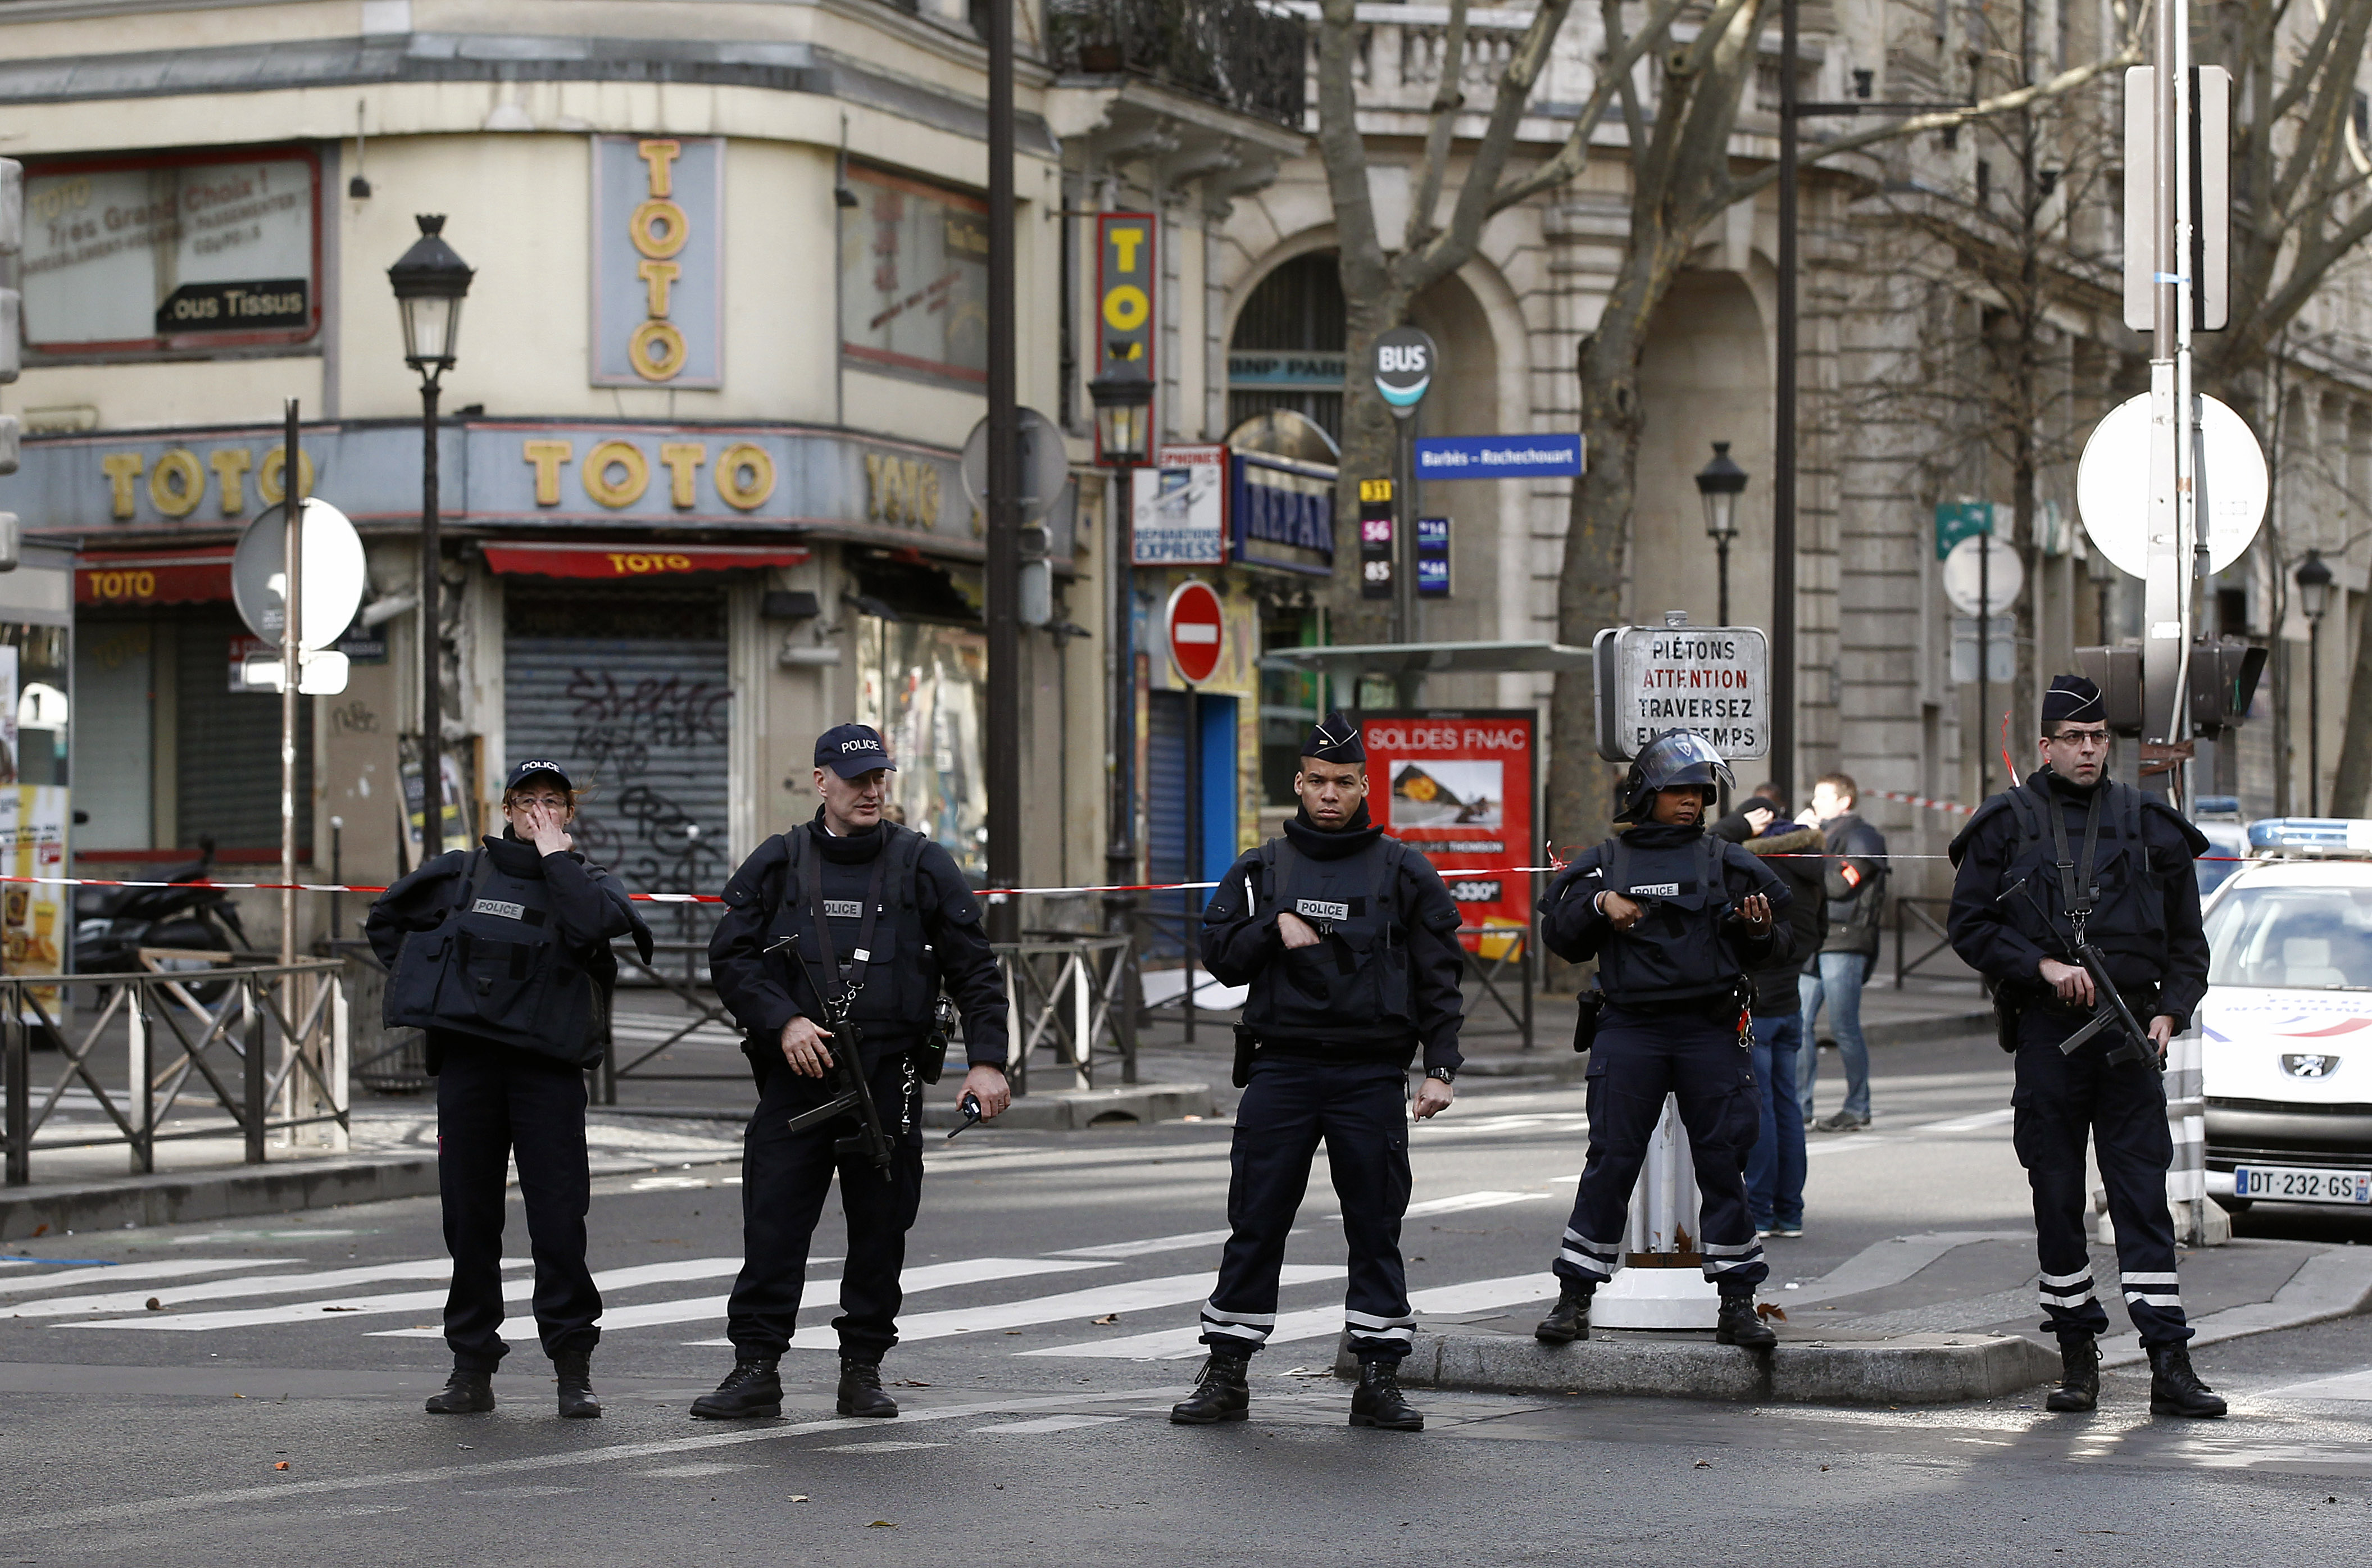 Soldes Paris 2016 4 Arrested In France Accused Of New Paris Attack Plot Cbs News